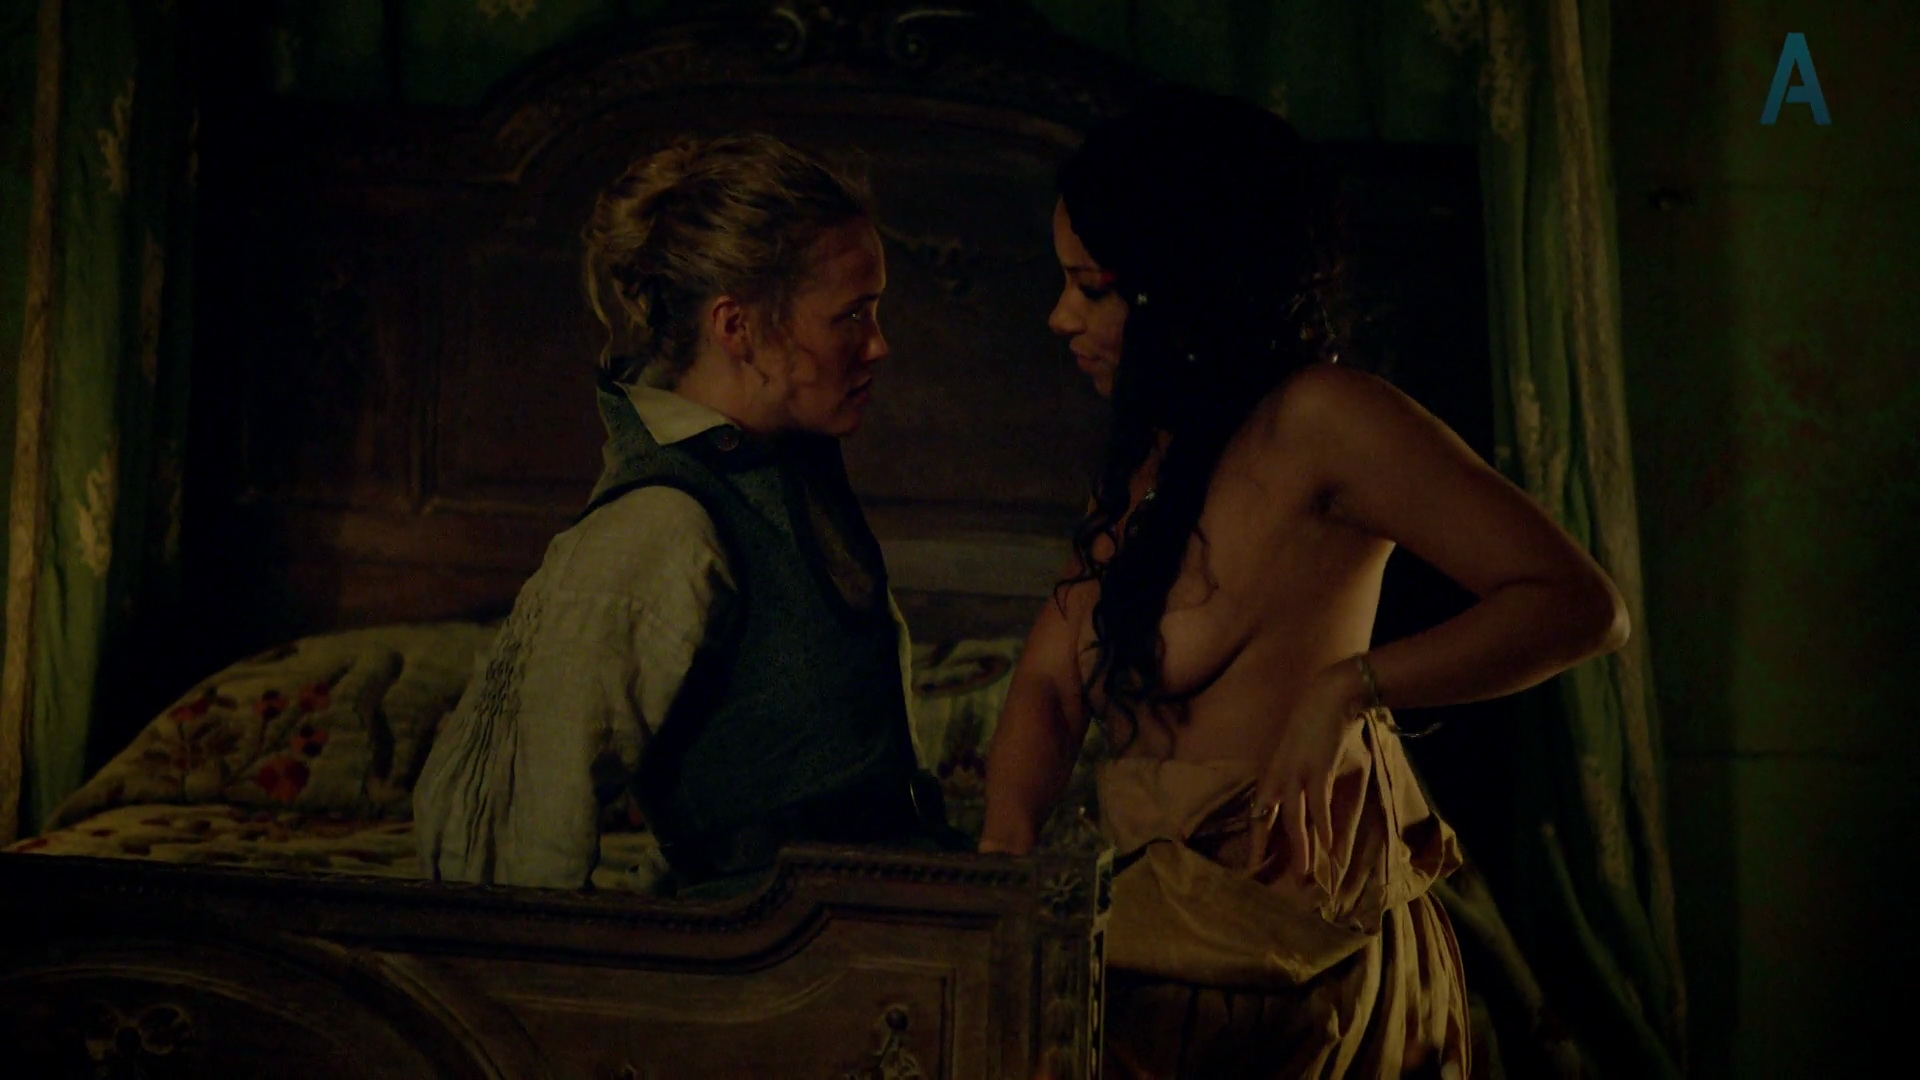 Jessica Parker Kennedy, Hannah New, etc – Black Sails s01e01 (2014) HD 1080p